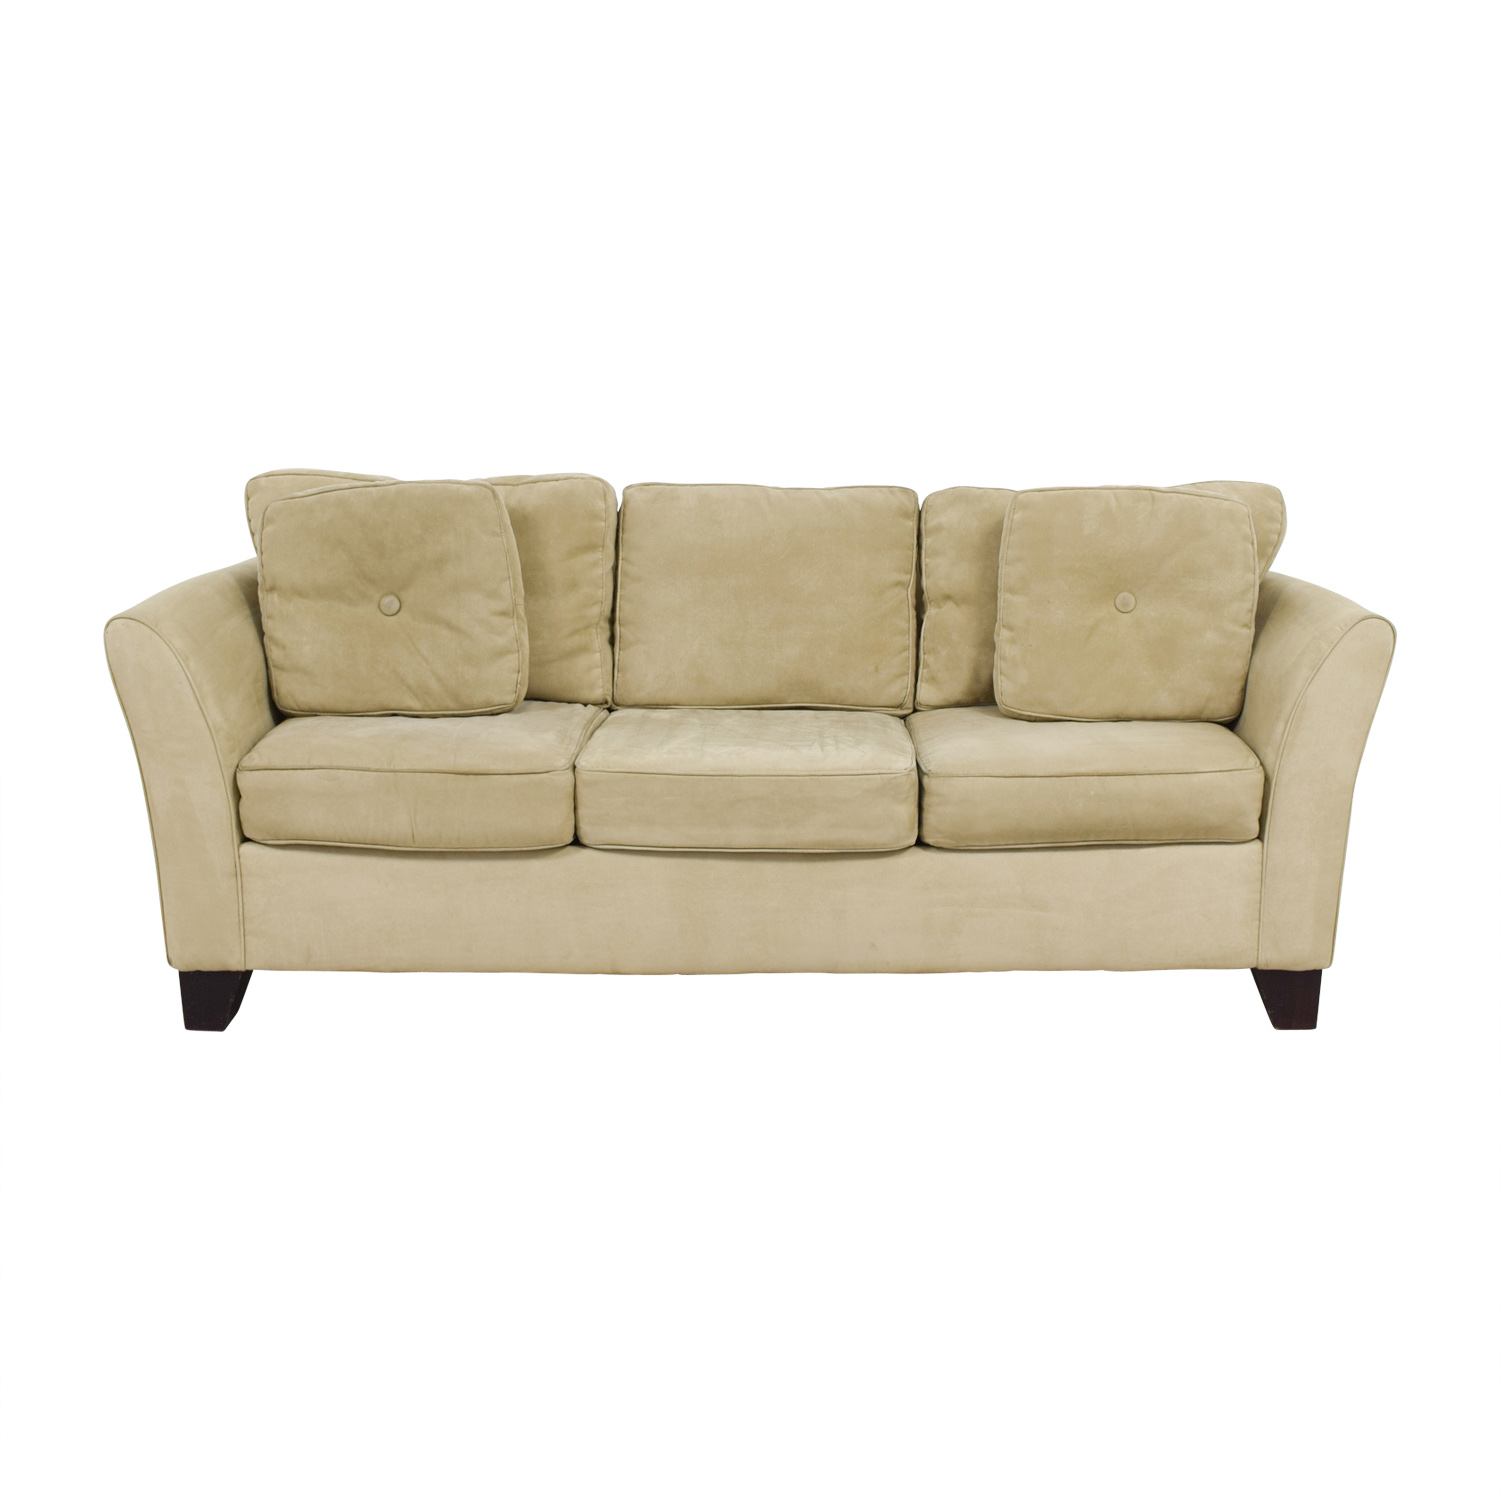 Macy's Macy's Tan Microfiber Three-Cushion Couch nj